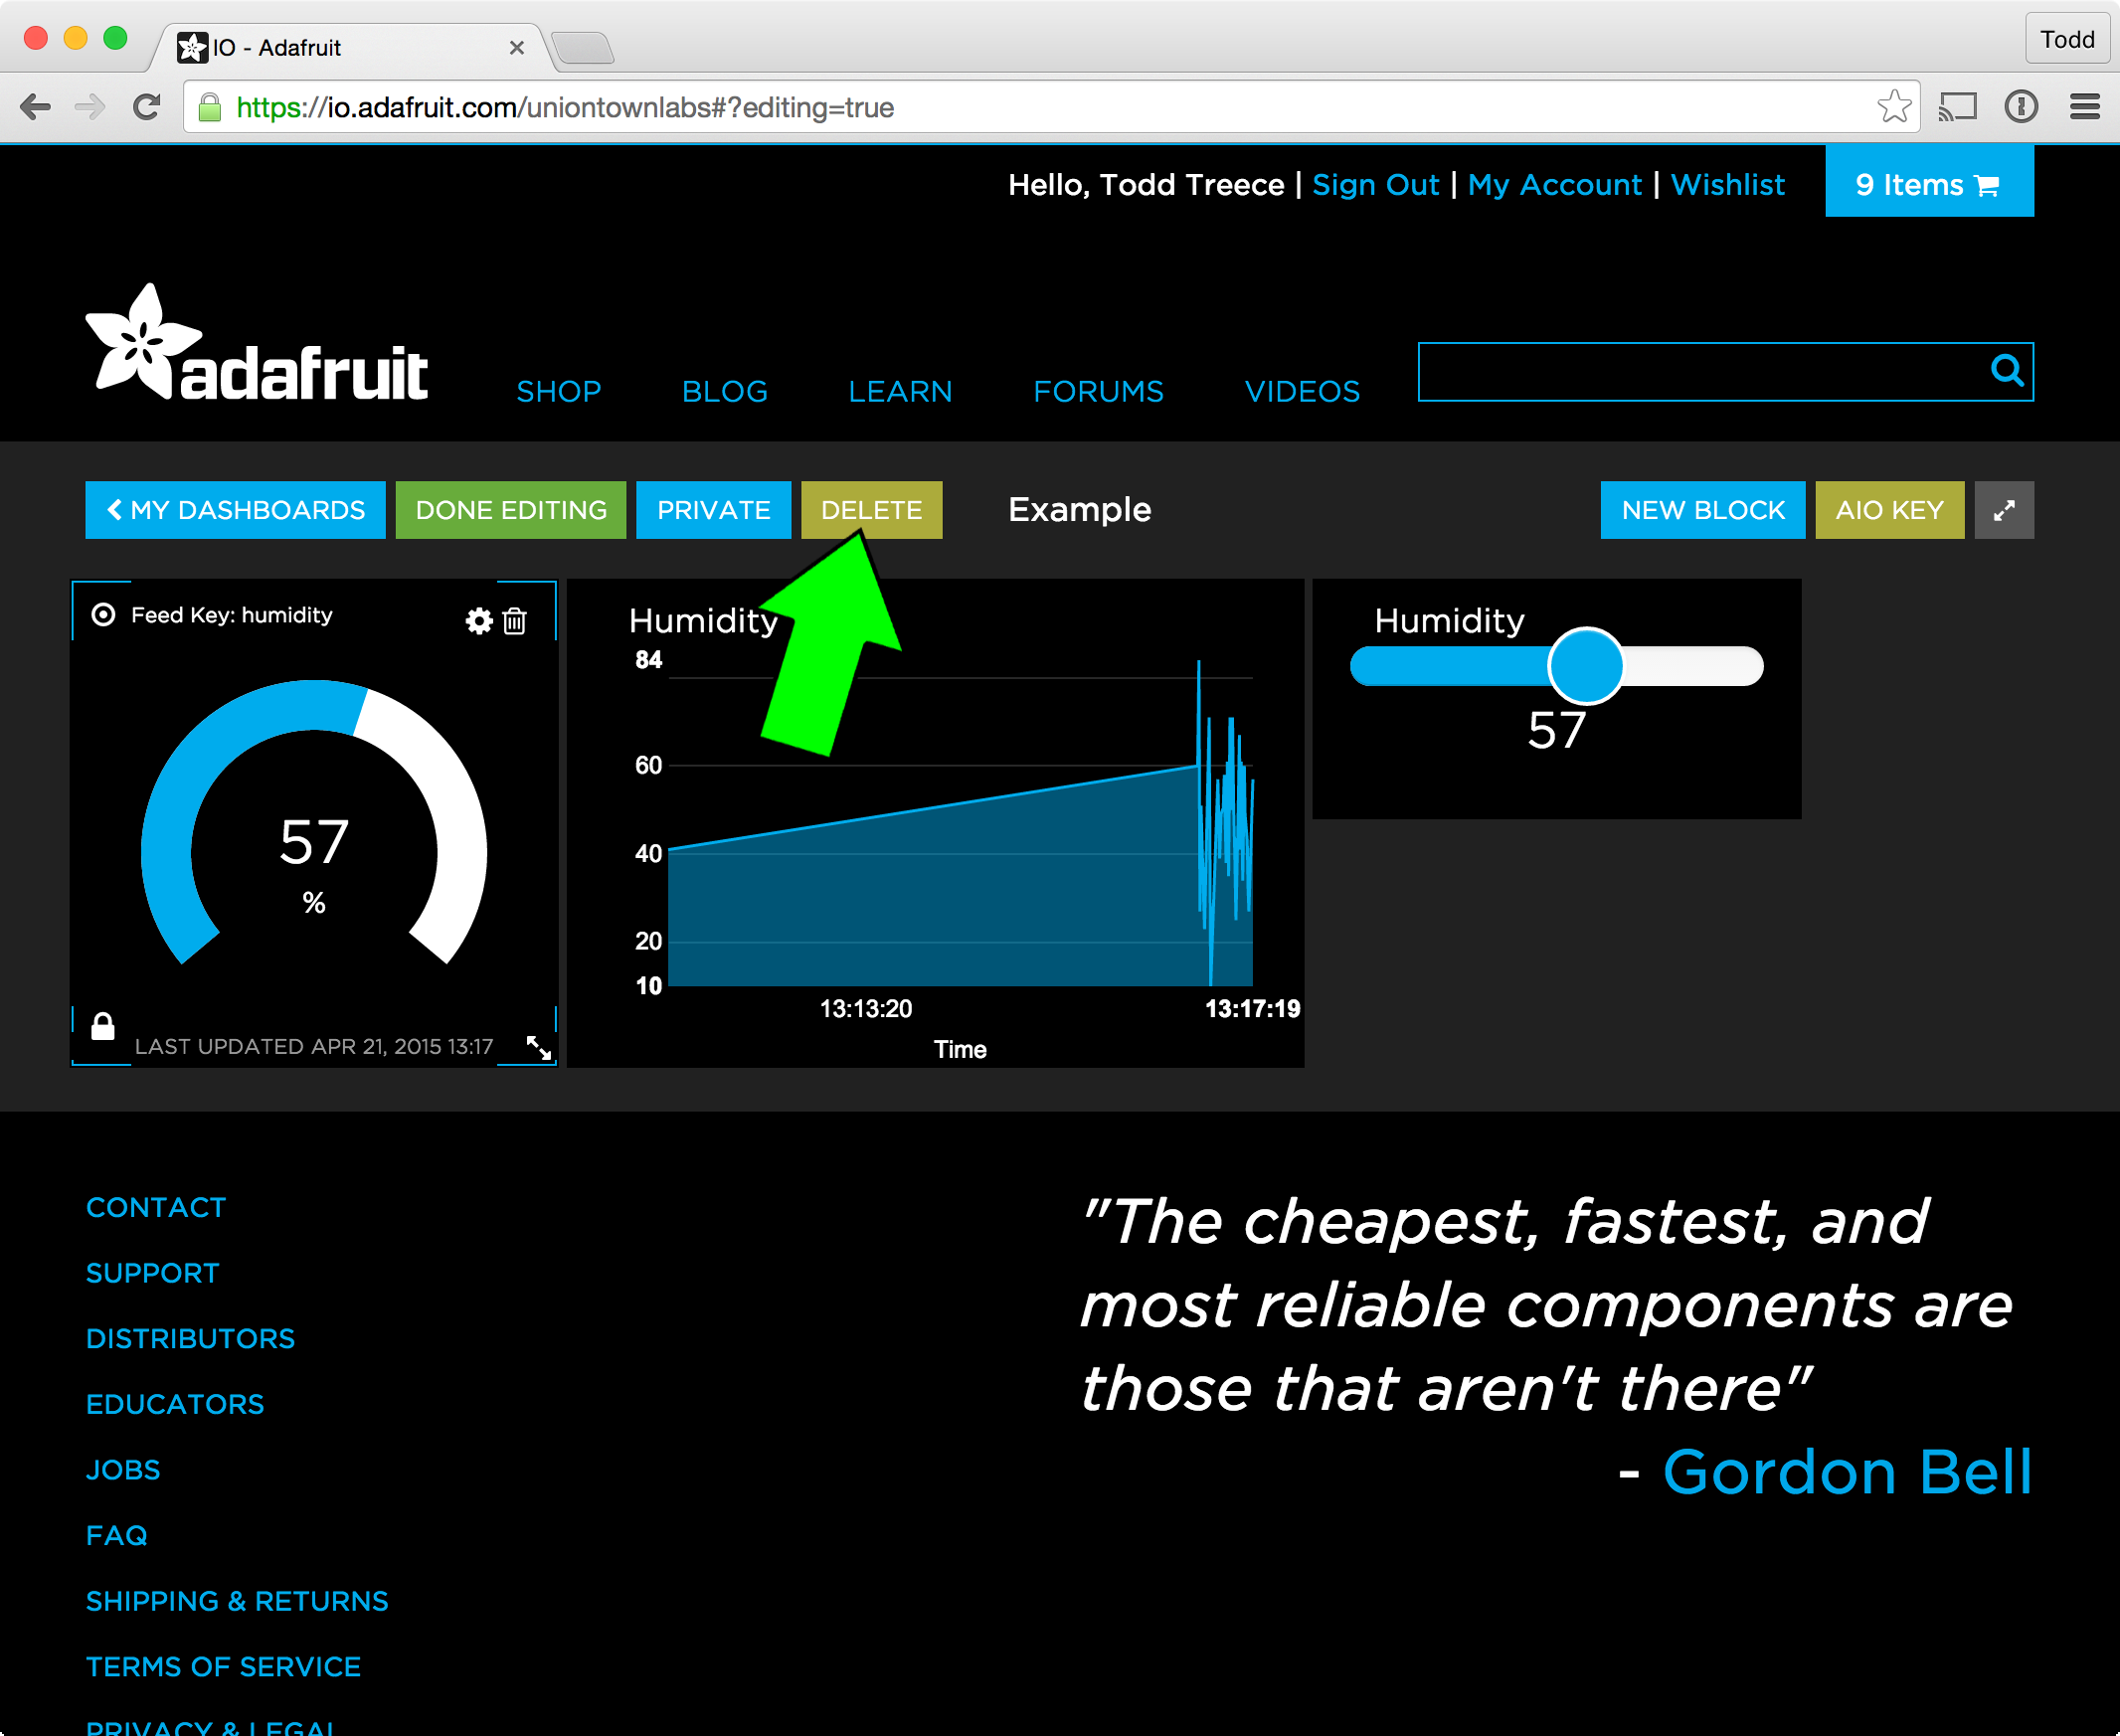 adafruit_io_Screen-Shot-2015-04-21-at-1.19.18-PM.png